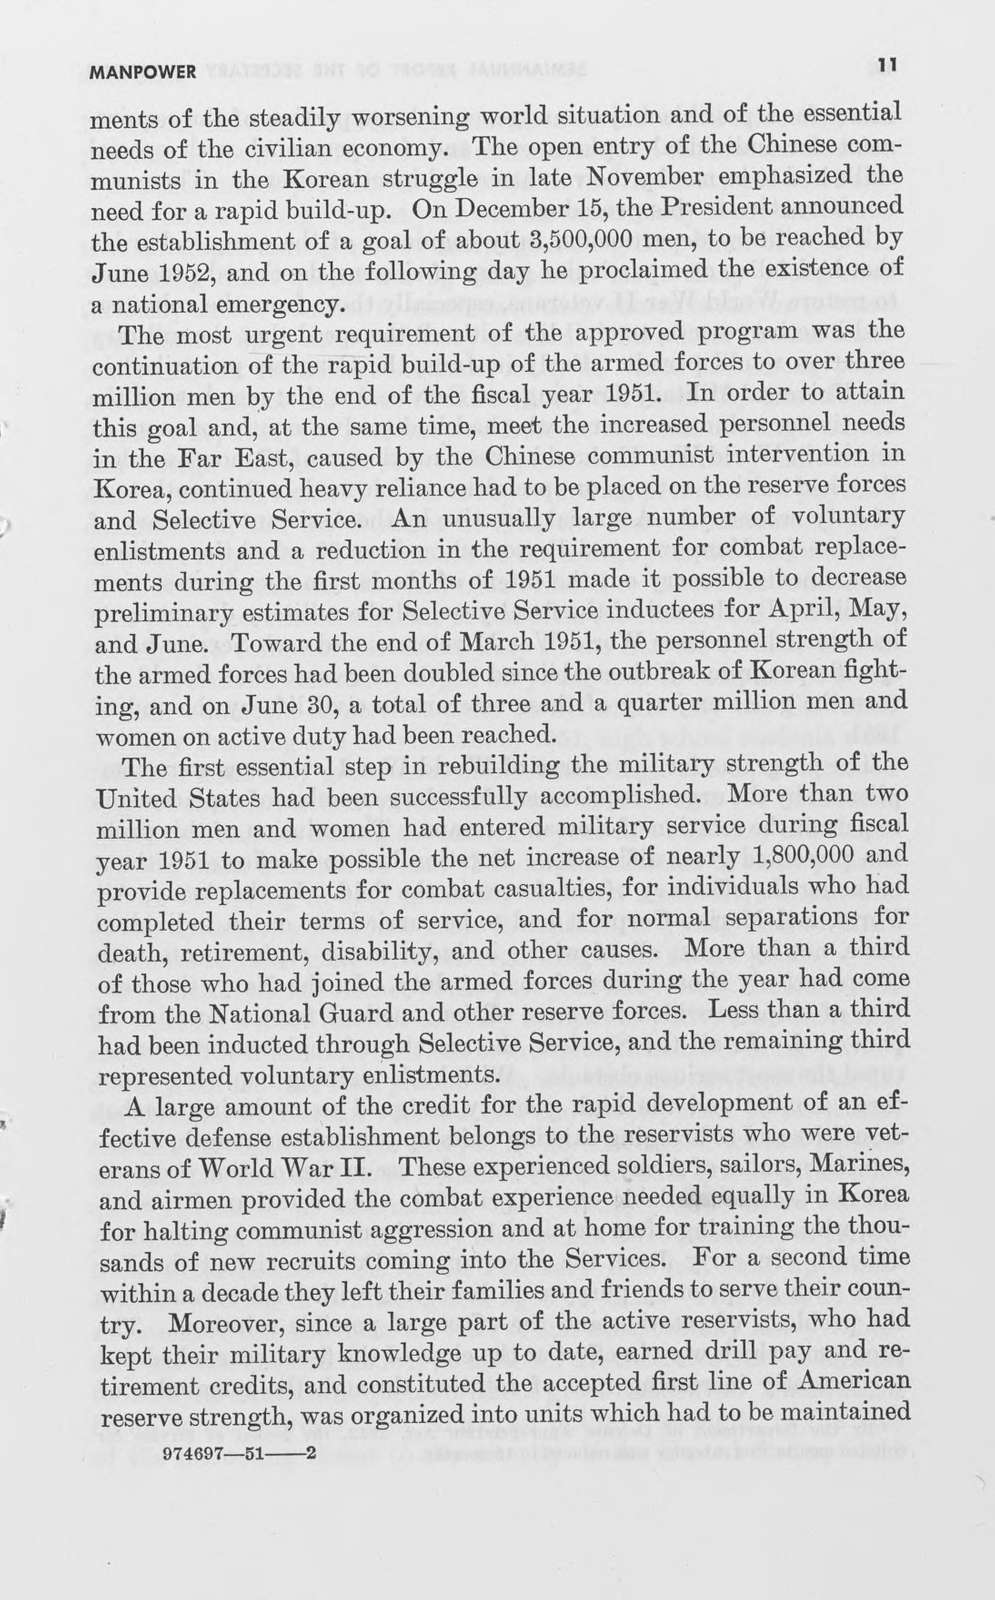 Semiannual report of the Secretary of Defense and the semiannual reports of the Secretary of the Army, Secretary of the Navy, Secretary of the Air Force